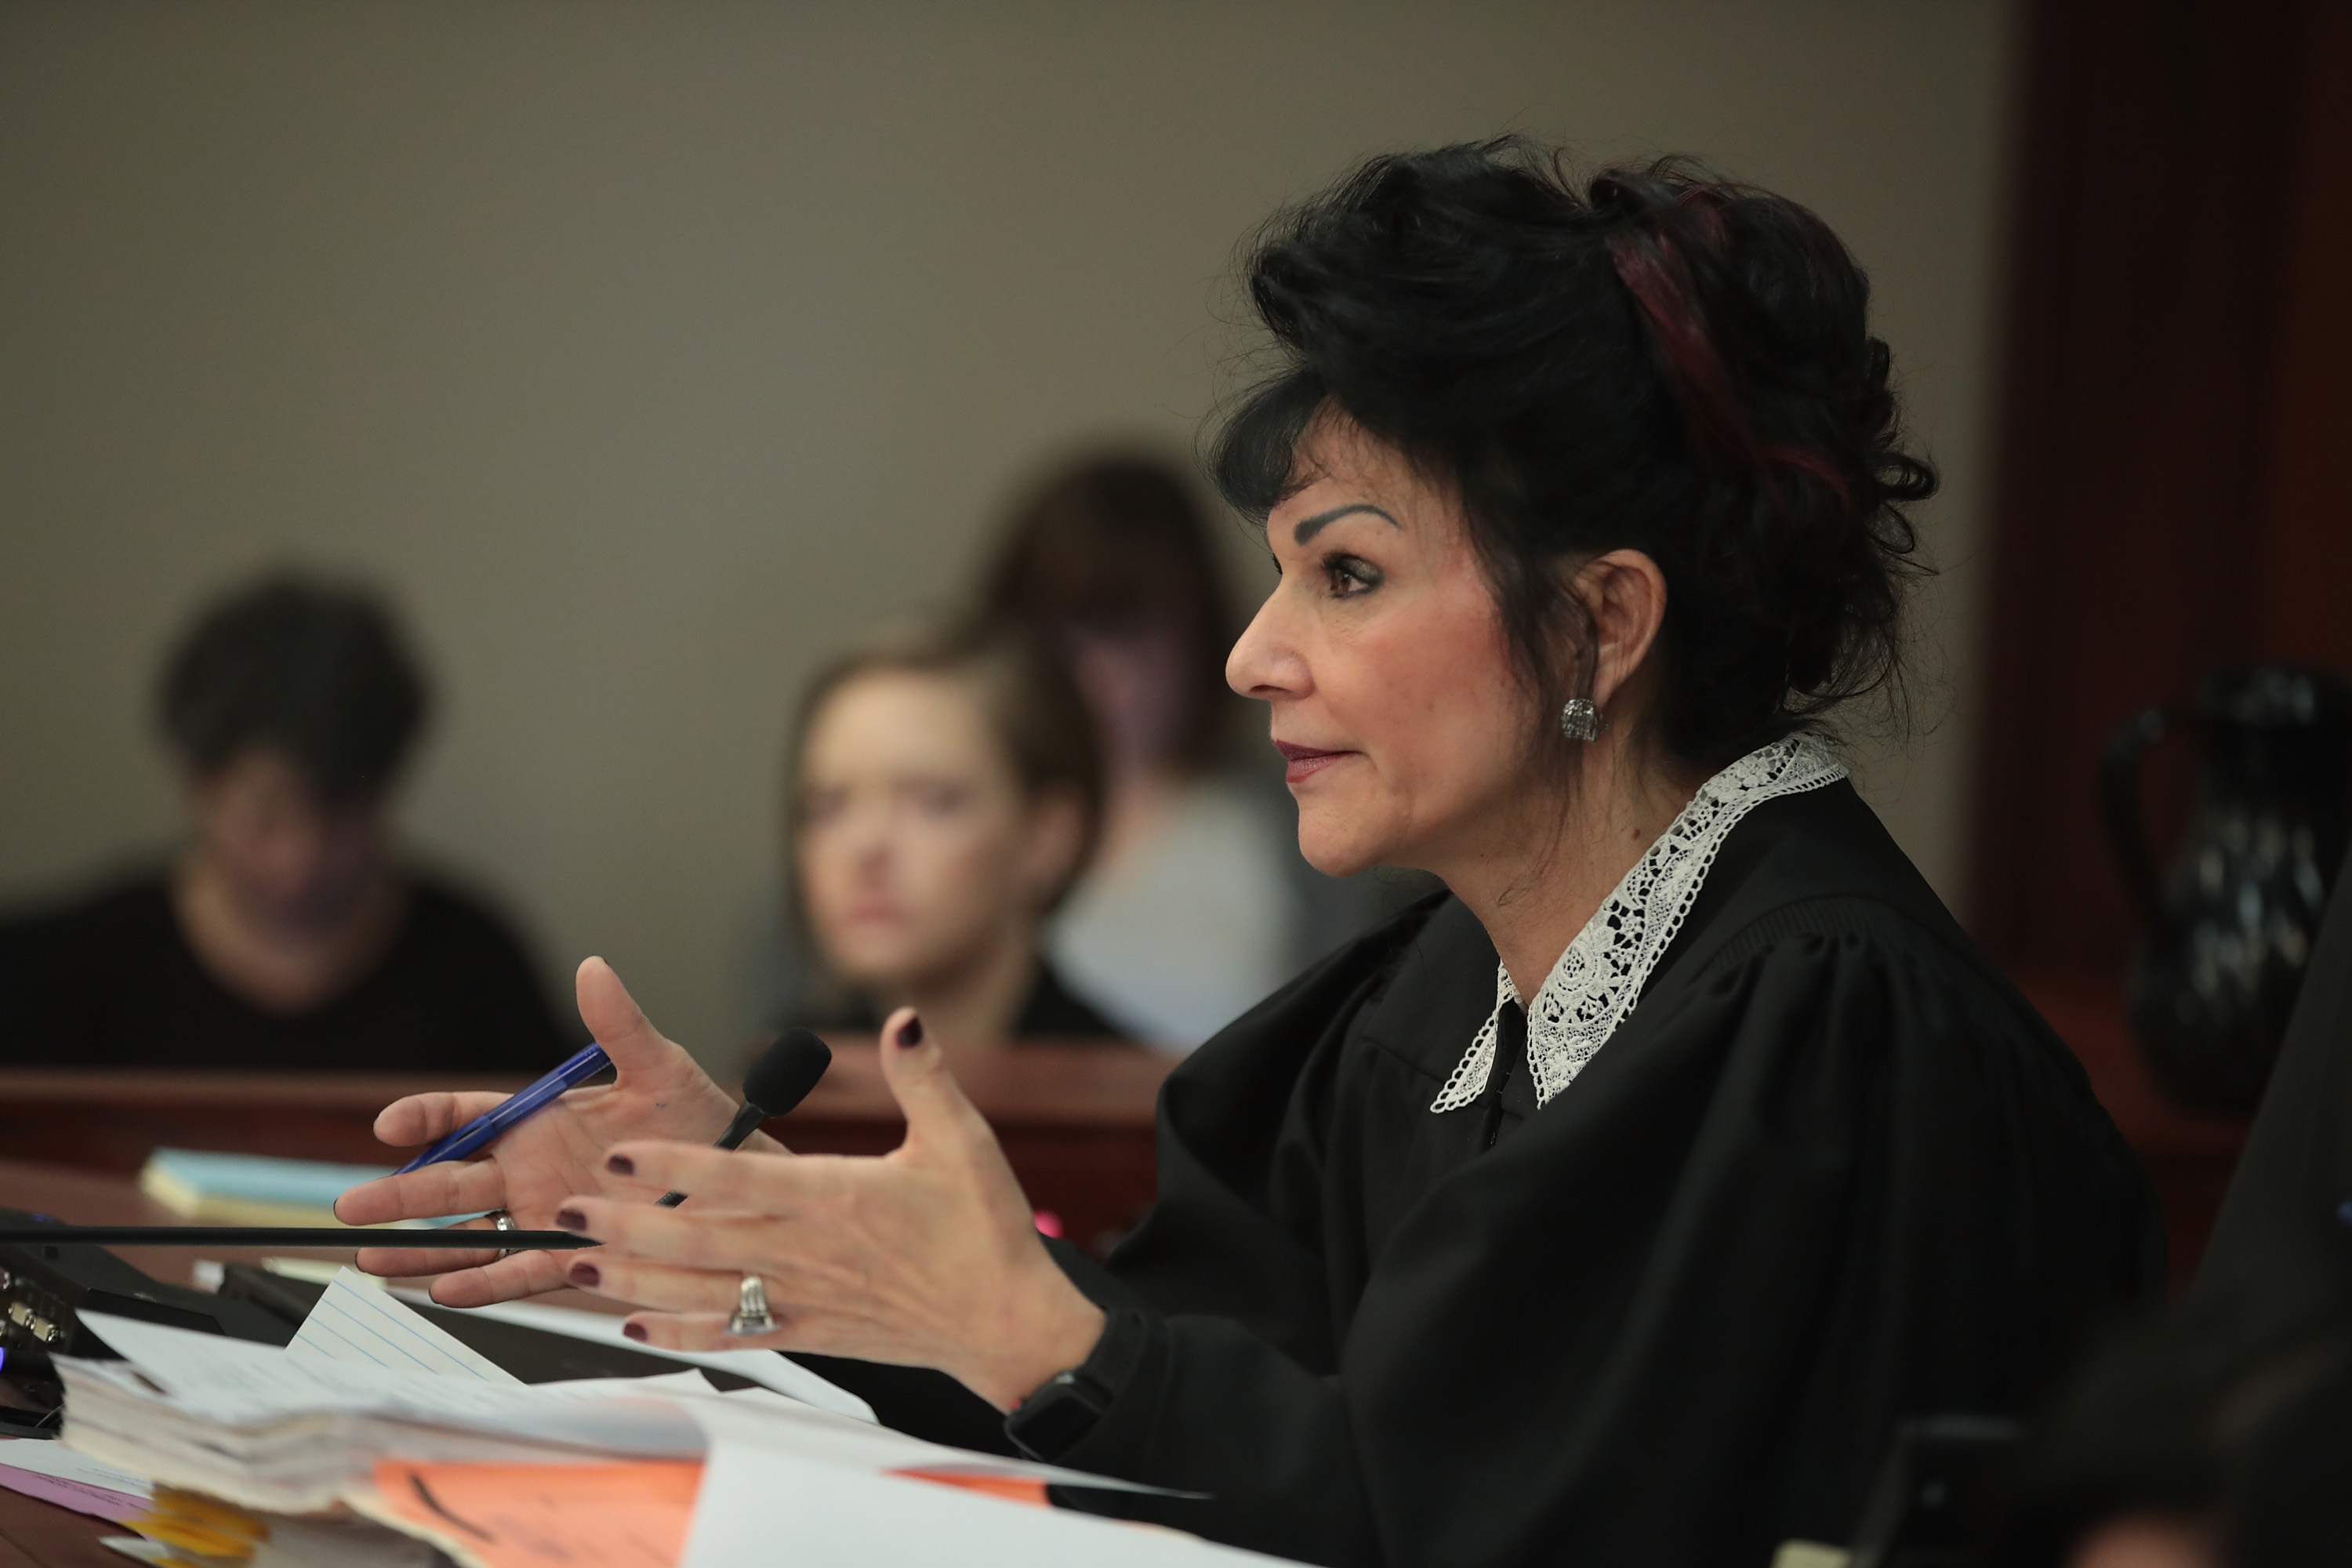 LANSING, MI - JANUARY 16: Judge Rosemarie Aquilina speaks at a sentencing hearing for Larry Nassar for molesting about 100 girls while he was a physician for USA Gymnastics and Michigan State University, where he had his sports-medicine practice on January 16, 2018 in Lansing, Michigan. (Photo by Scott Olson/Getty Images)